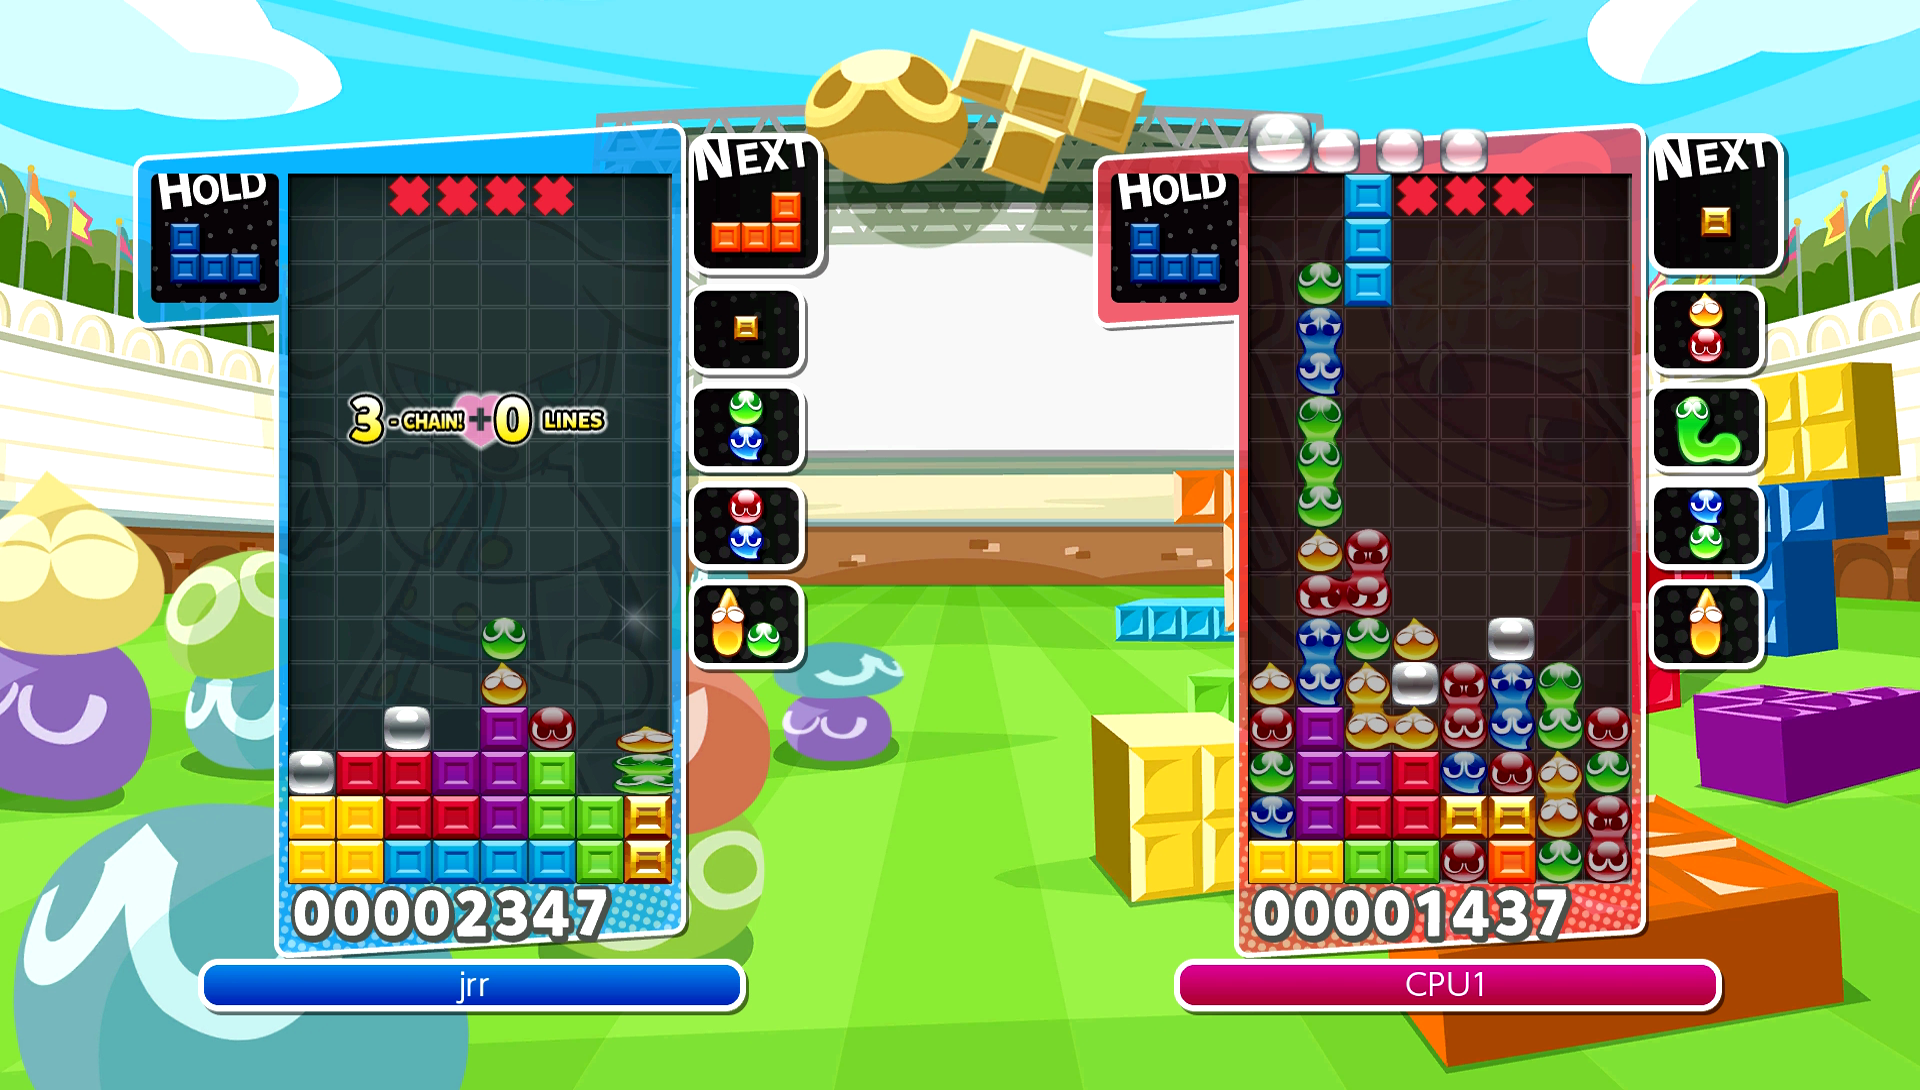 Puyo Puyo Tetris Released in North America